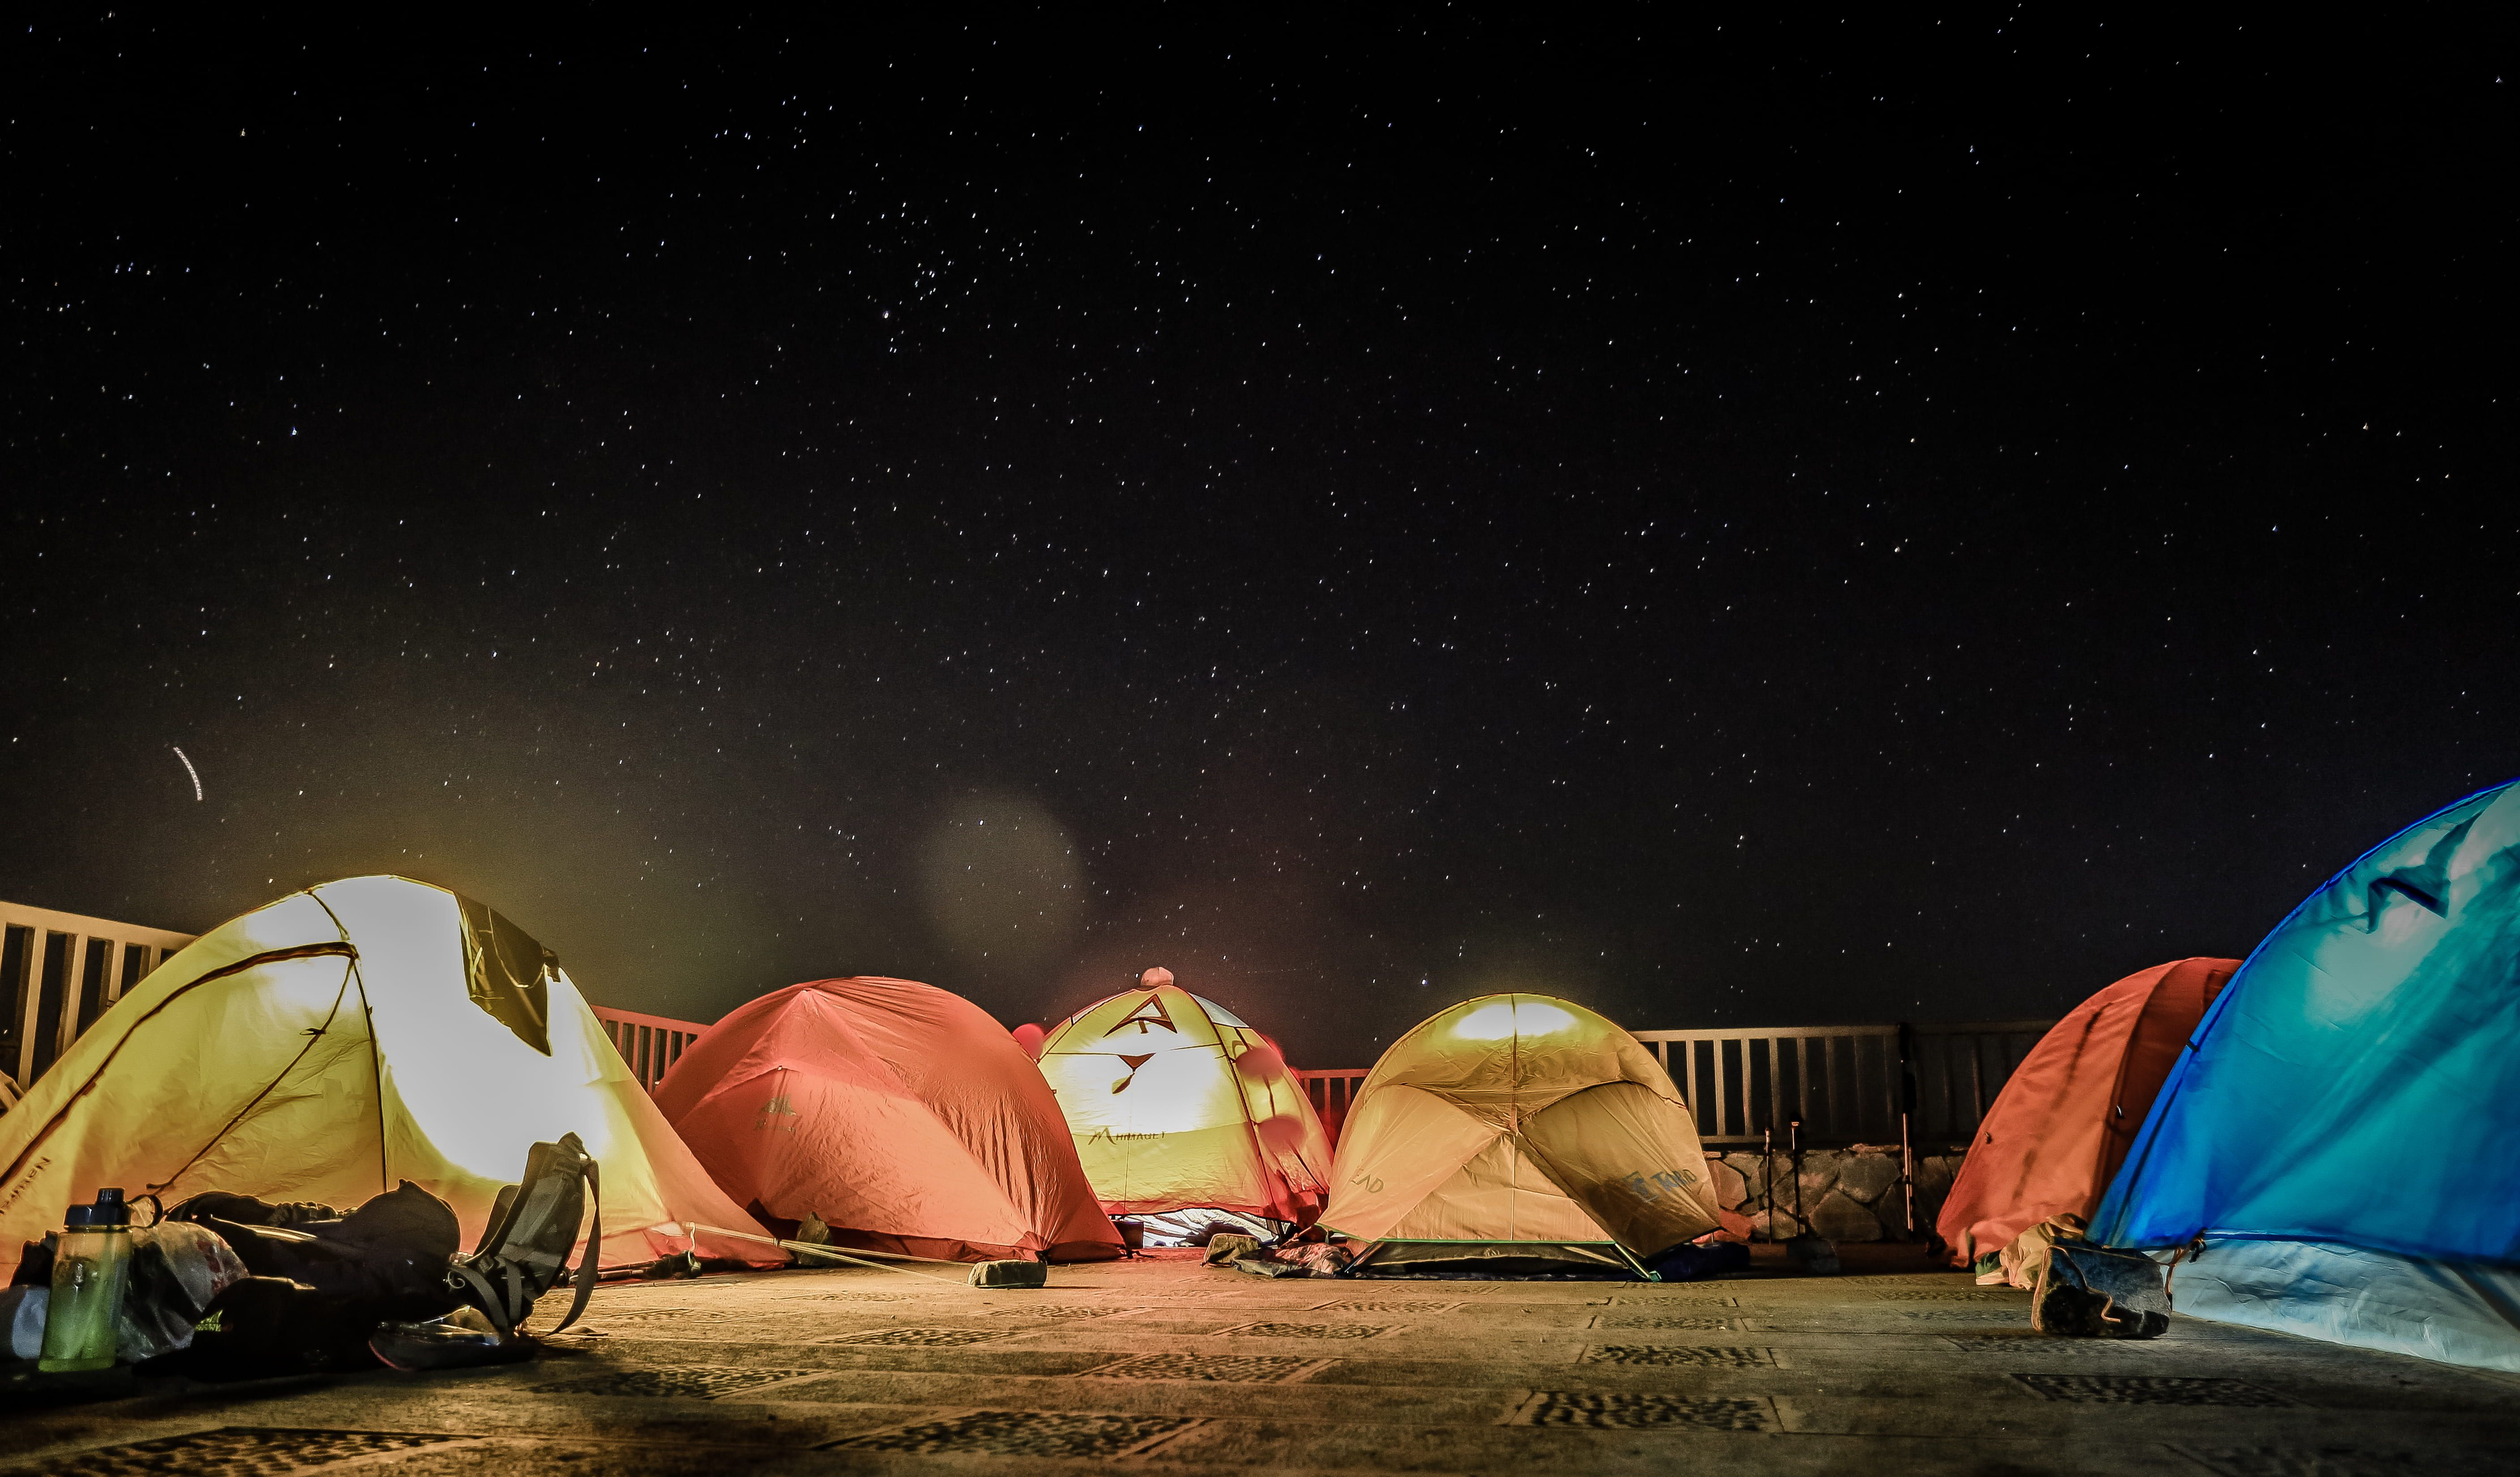 Assorted Color Dome Tents Beside Fence Camping Tents Under Starry Sky Camping Tent Dark Night Illumin In 2021 Tent Family Camping Photography Camping Photography